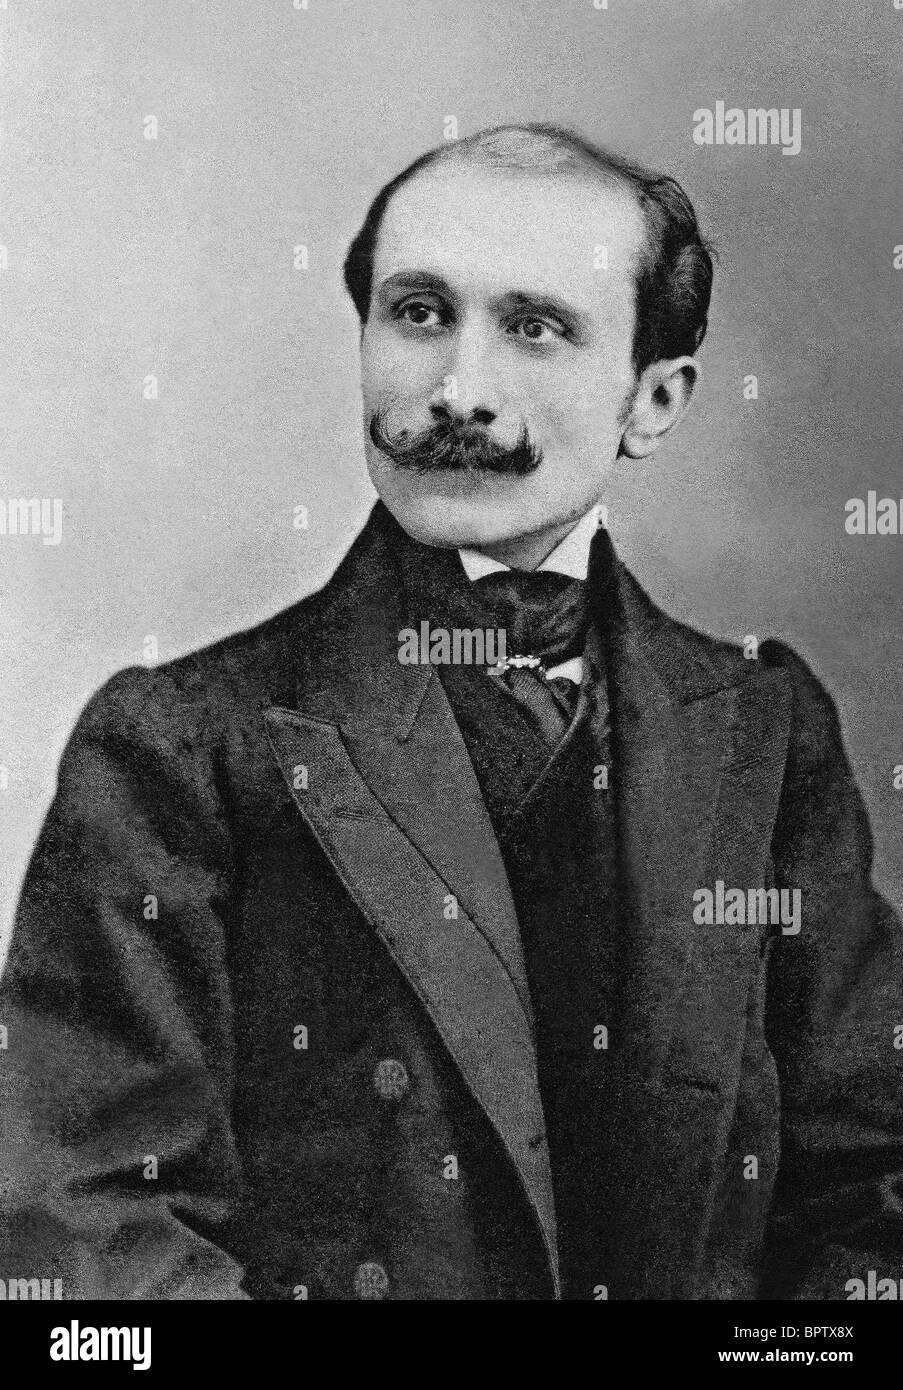 EDMOND ROSTAND WRITER (1918) - Stock Image